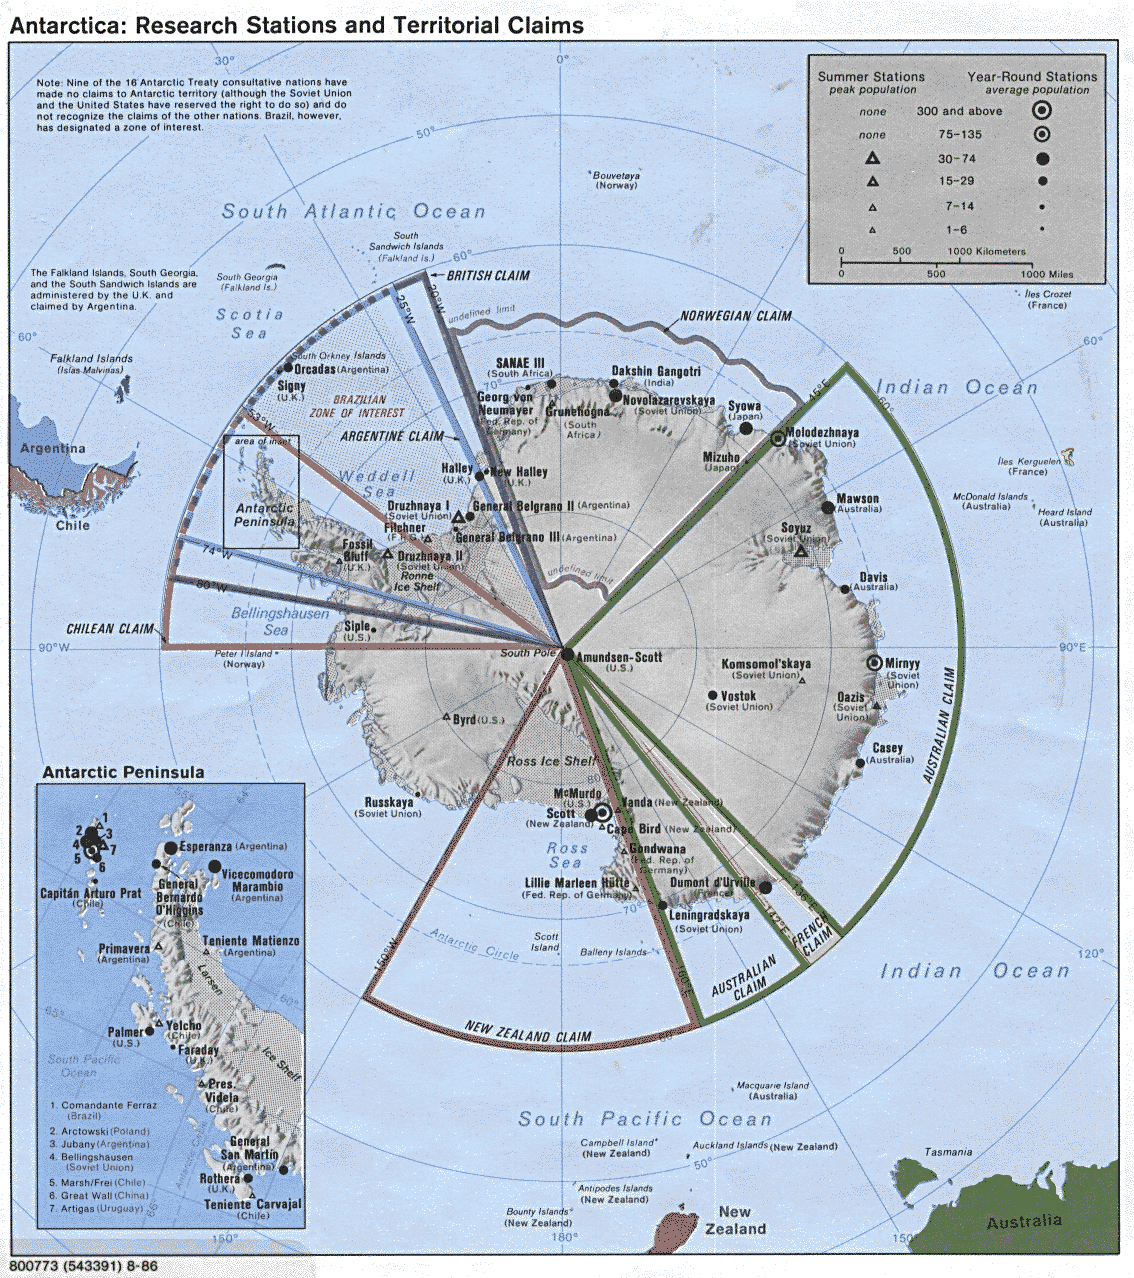 FileAntarctica research stationpng Wikimedia Commons